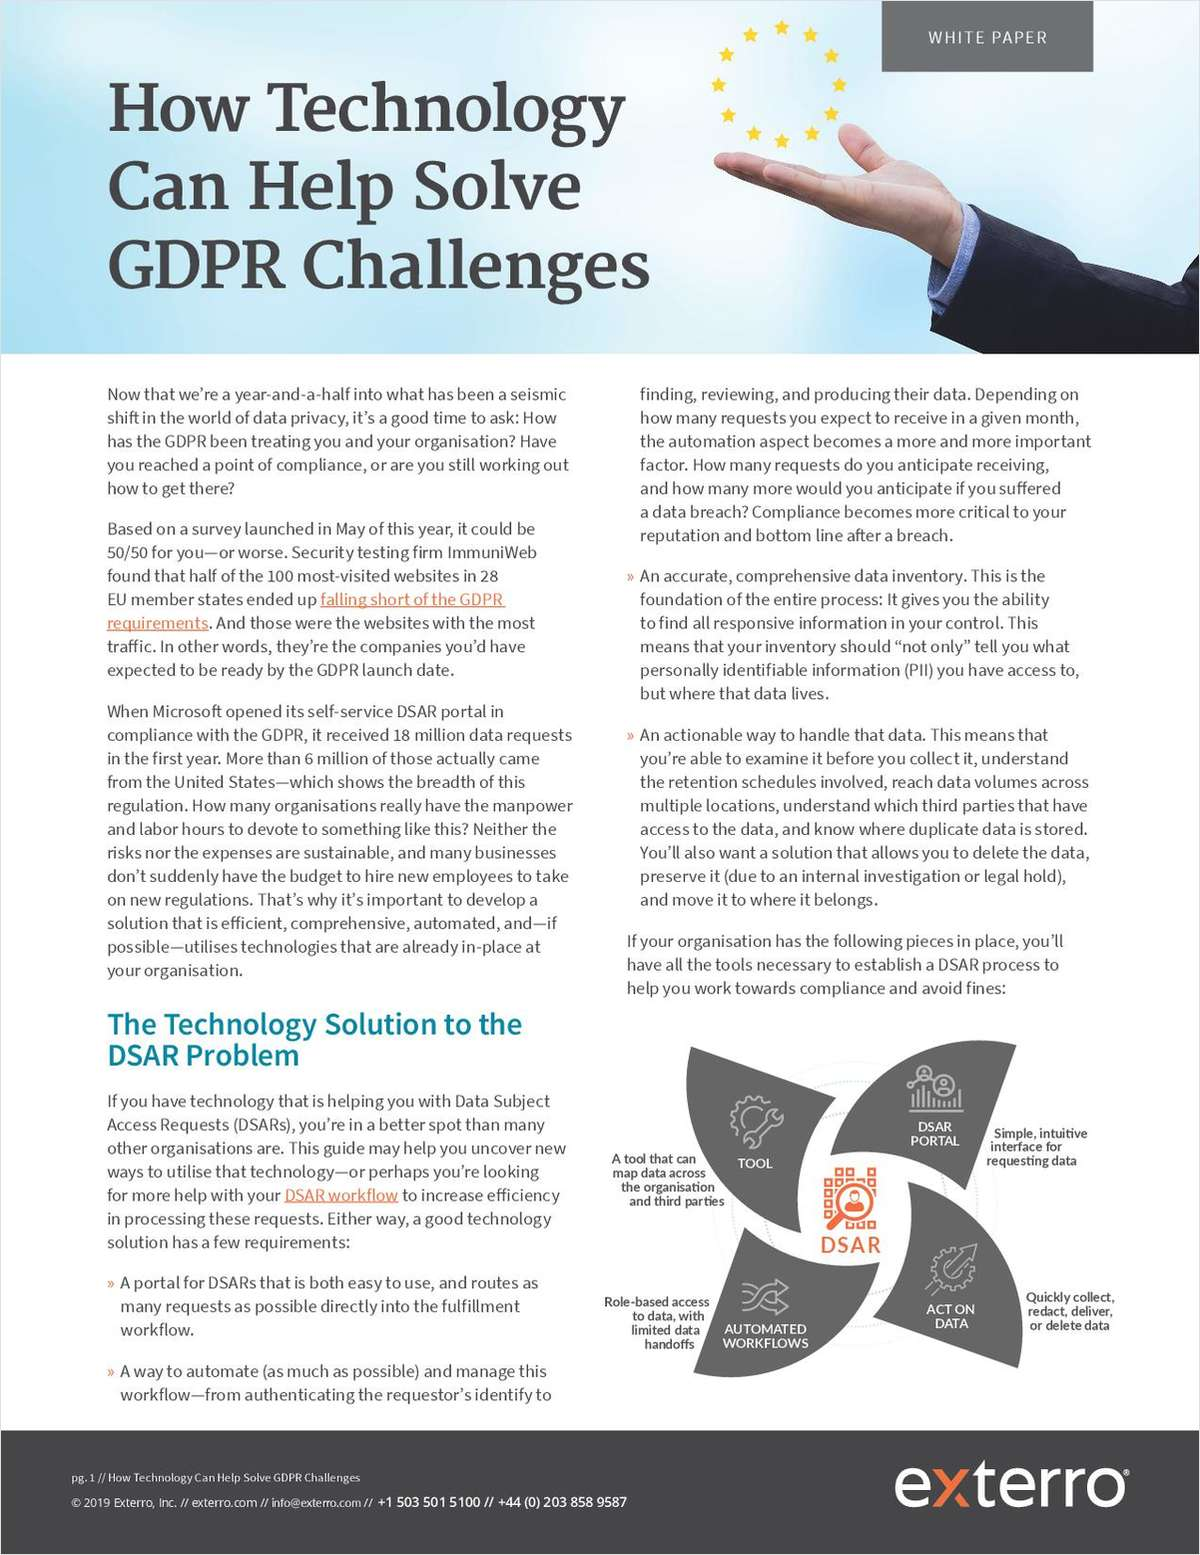 How Technology Can Help Solve GDPR Challenges